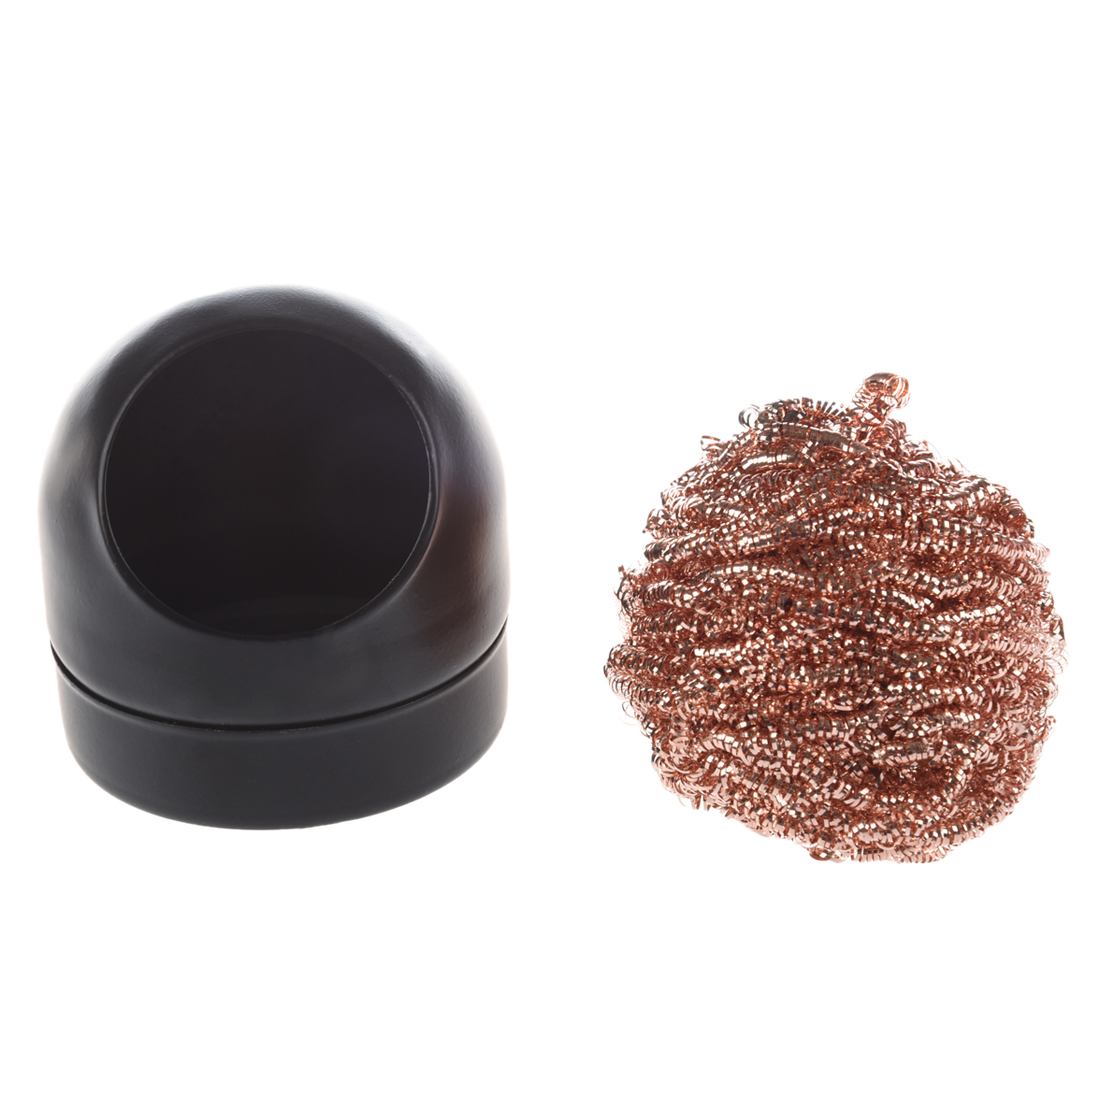 soldering iron tip cleaning wire nozzle cleaner sponge ball w storage holder ad. Black Bedroom Furniture Sets. Home Design Ideas